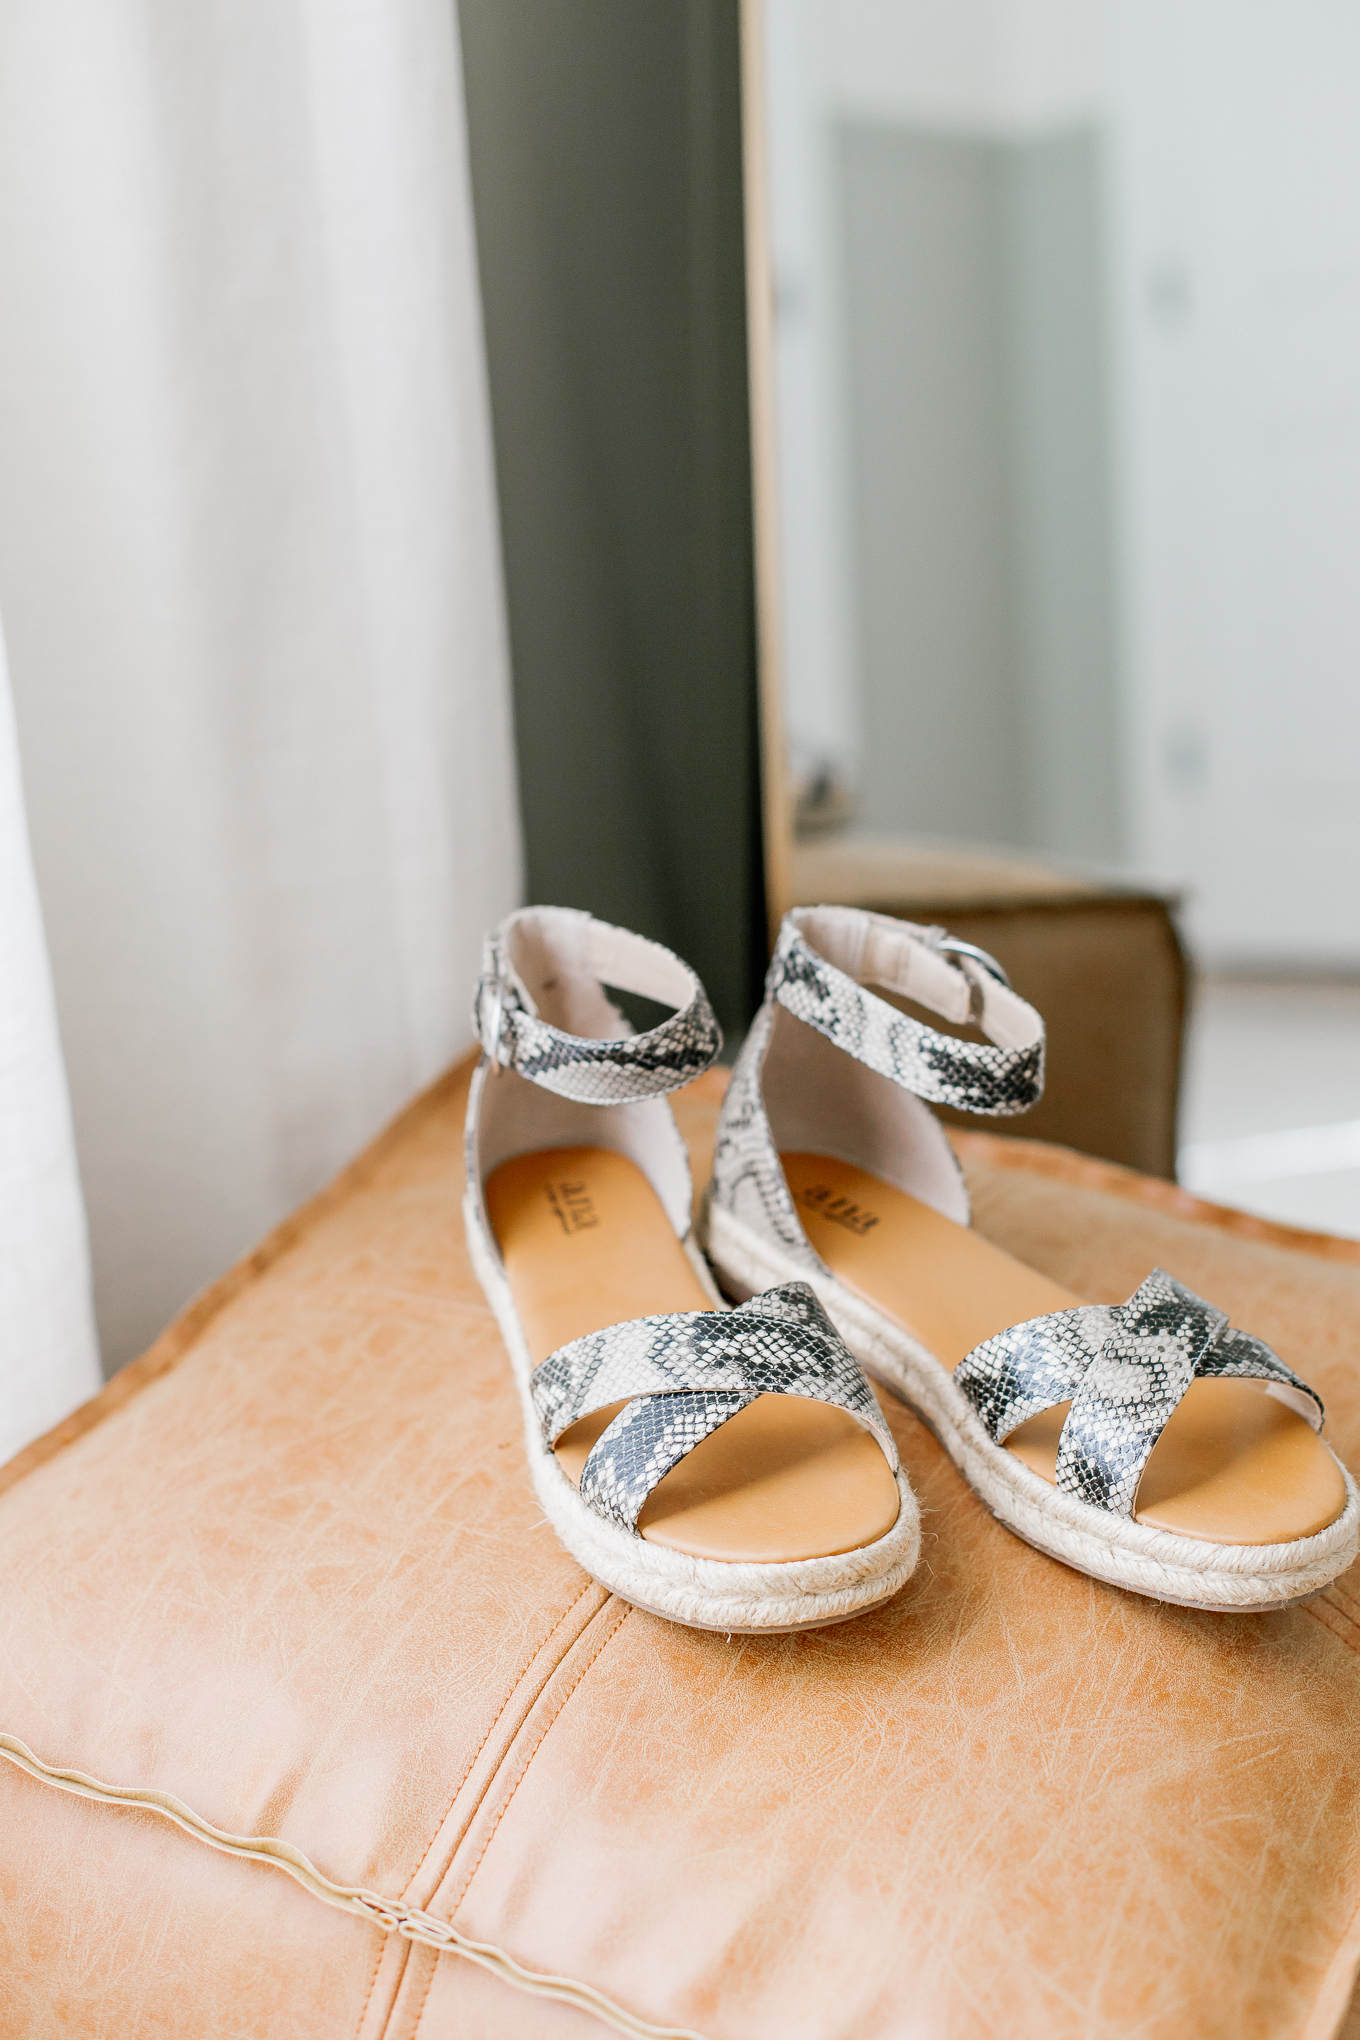 The BEST Affordable Spring Sandals for Women   Snakeskin Ankle Strap Sandals   Louella Reese